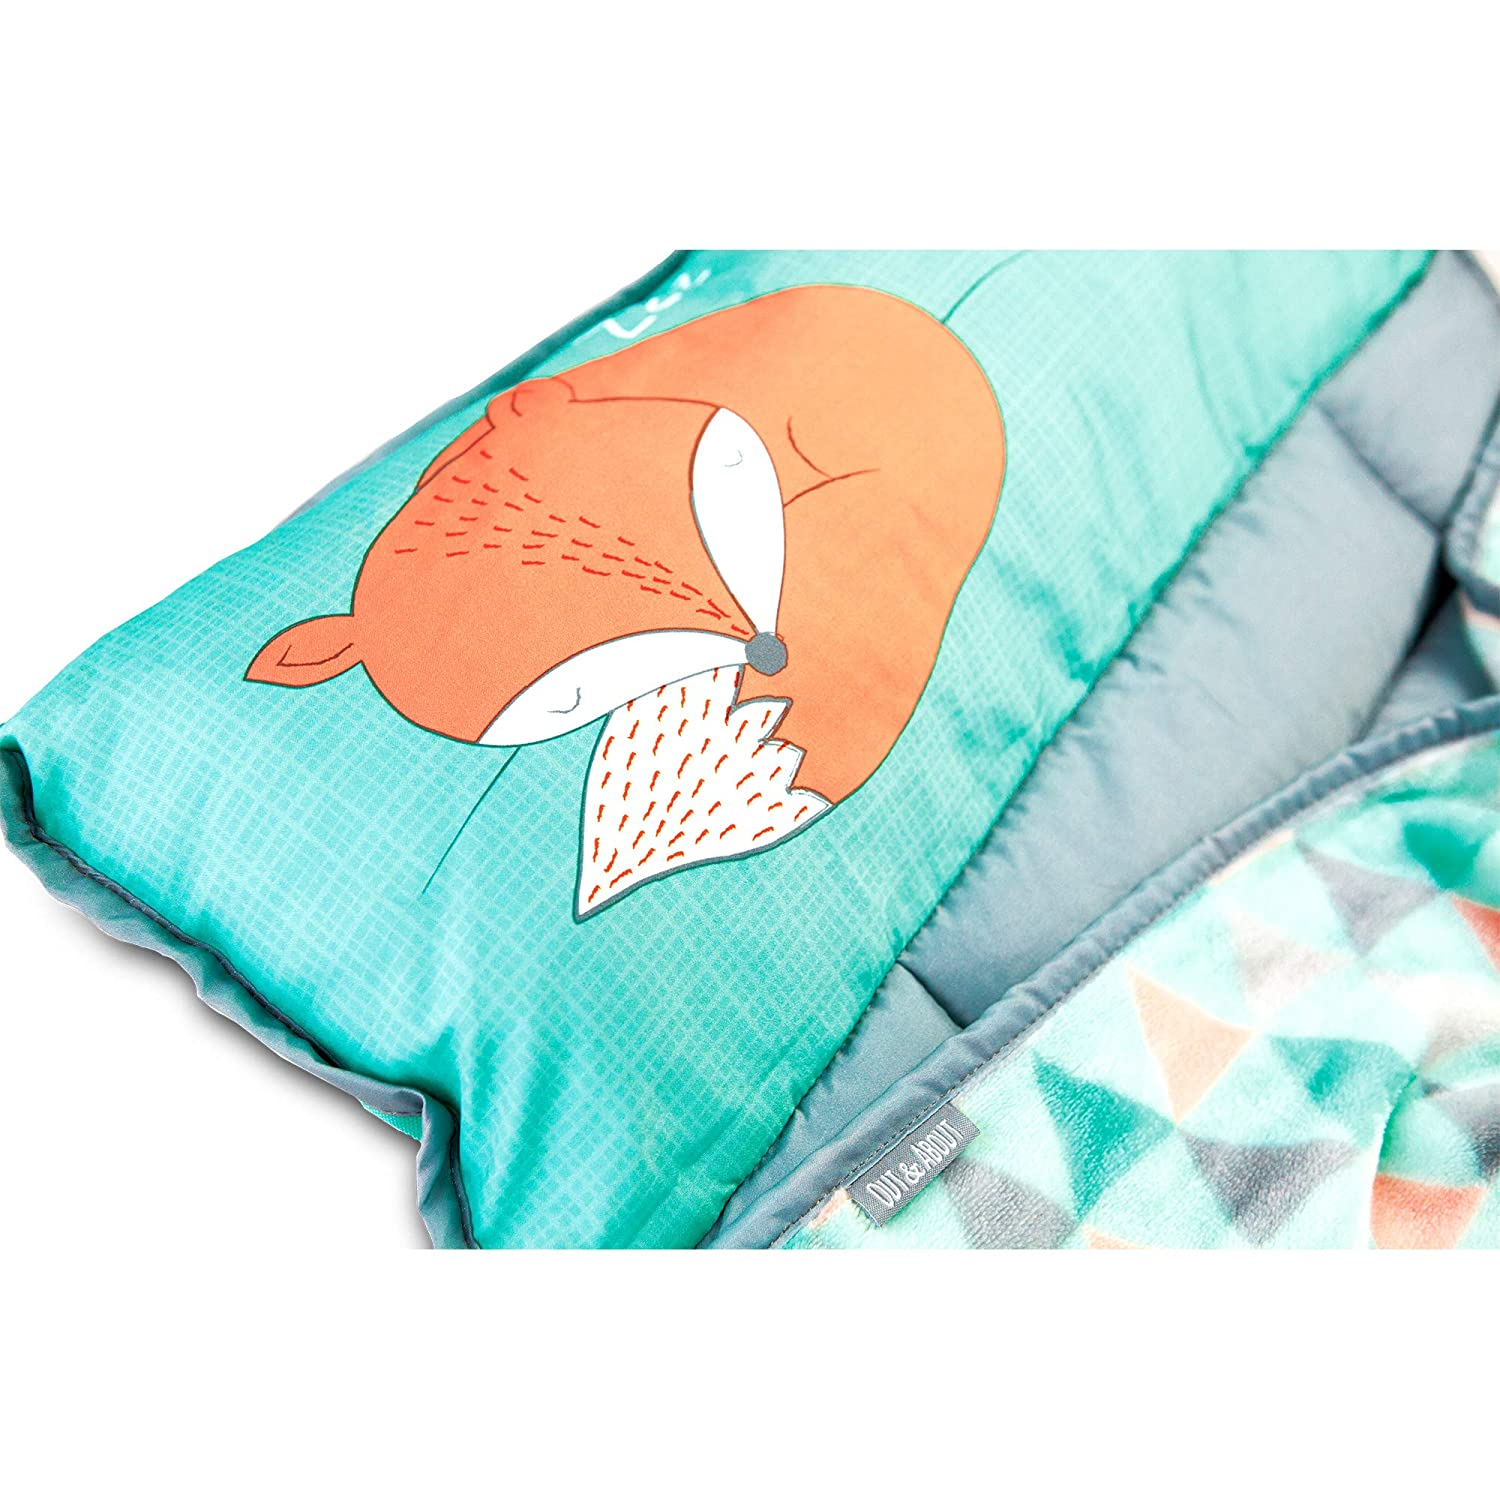 Blanket Pillow For Boys or Girls Mountain Fox Foldable Comfy Cover Toddler Nap Mats For Preschool Kinder Daycare